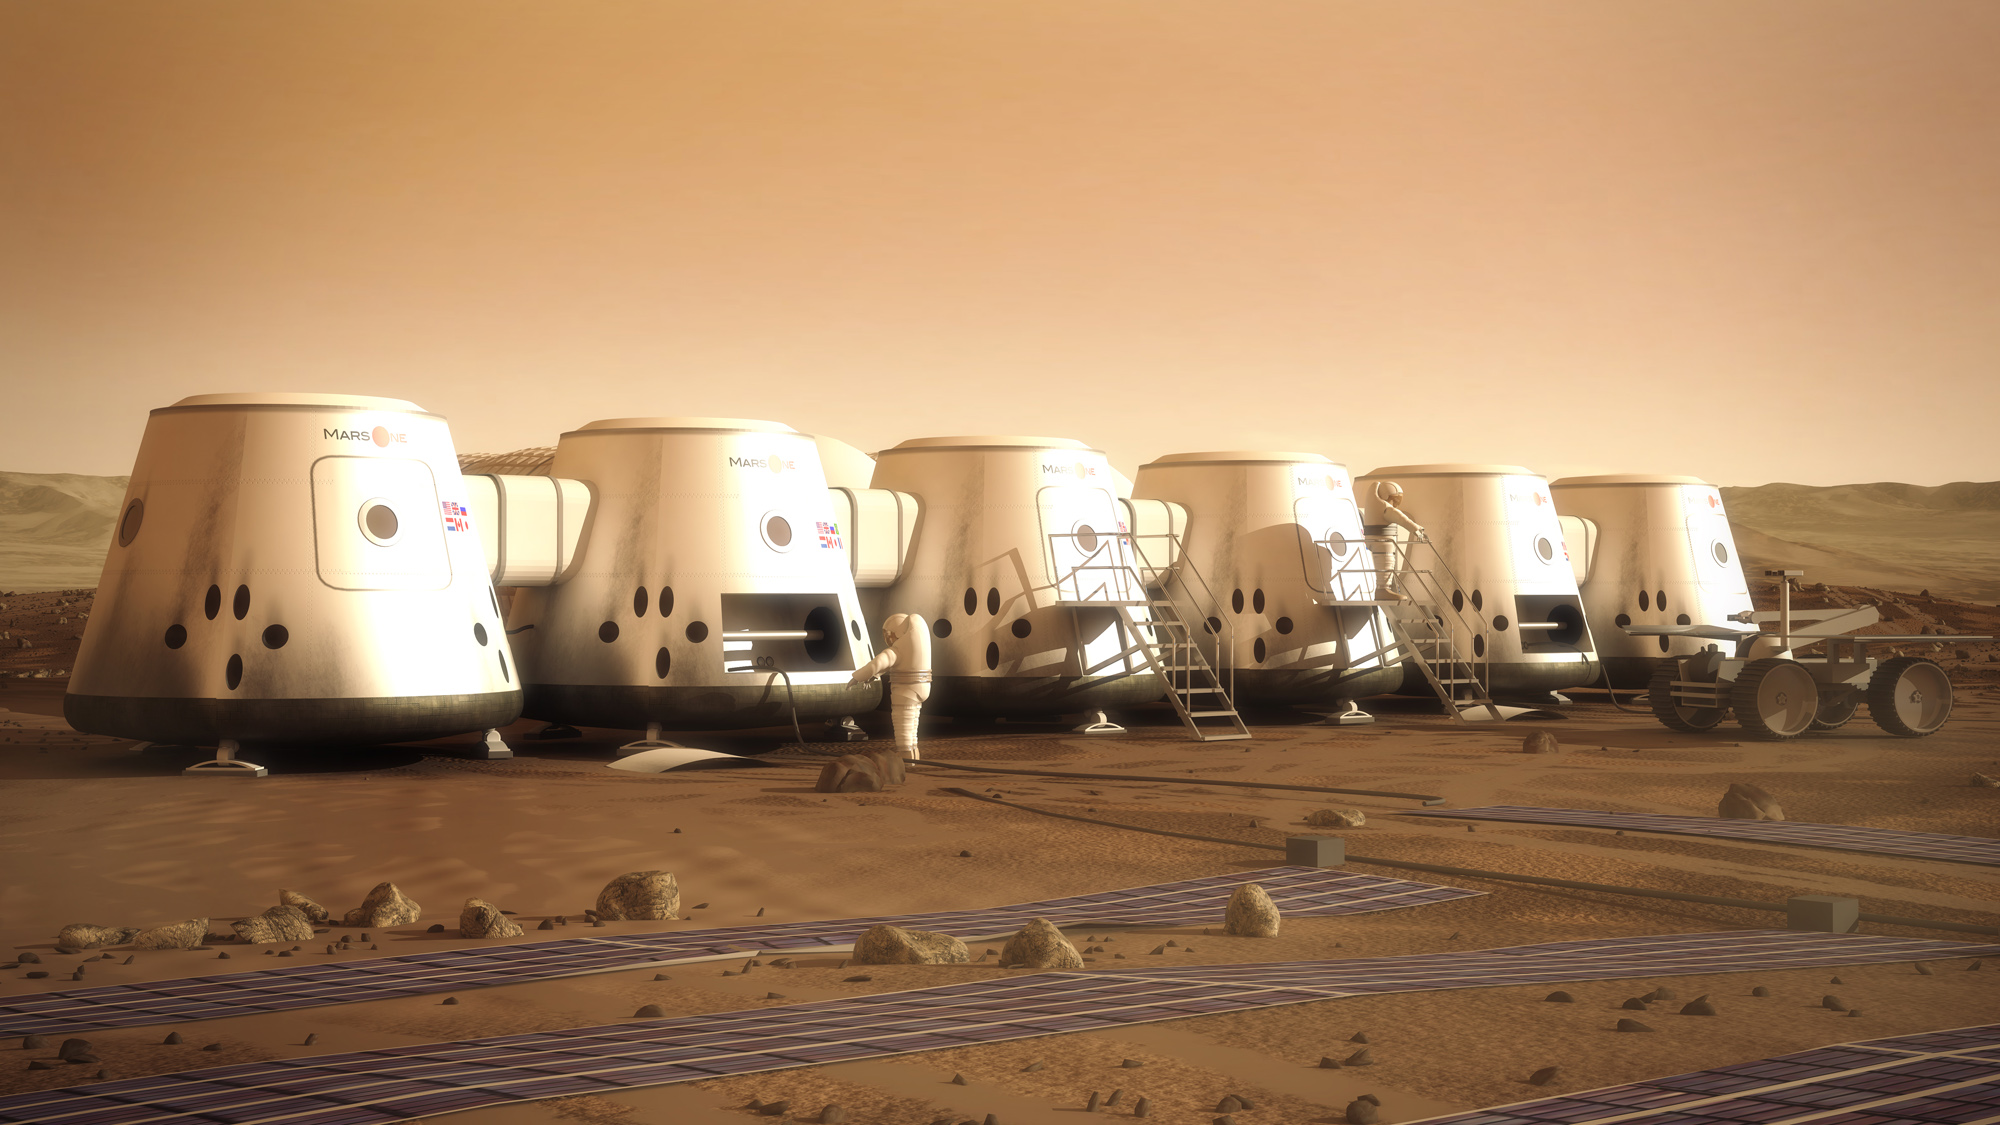 These People Want to Go to Mars (and Never Come Back)